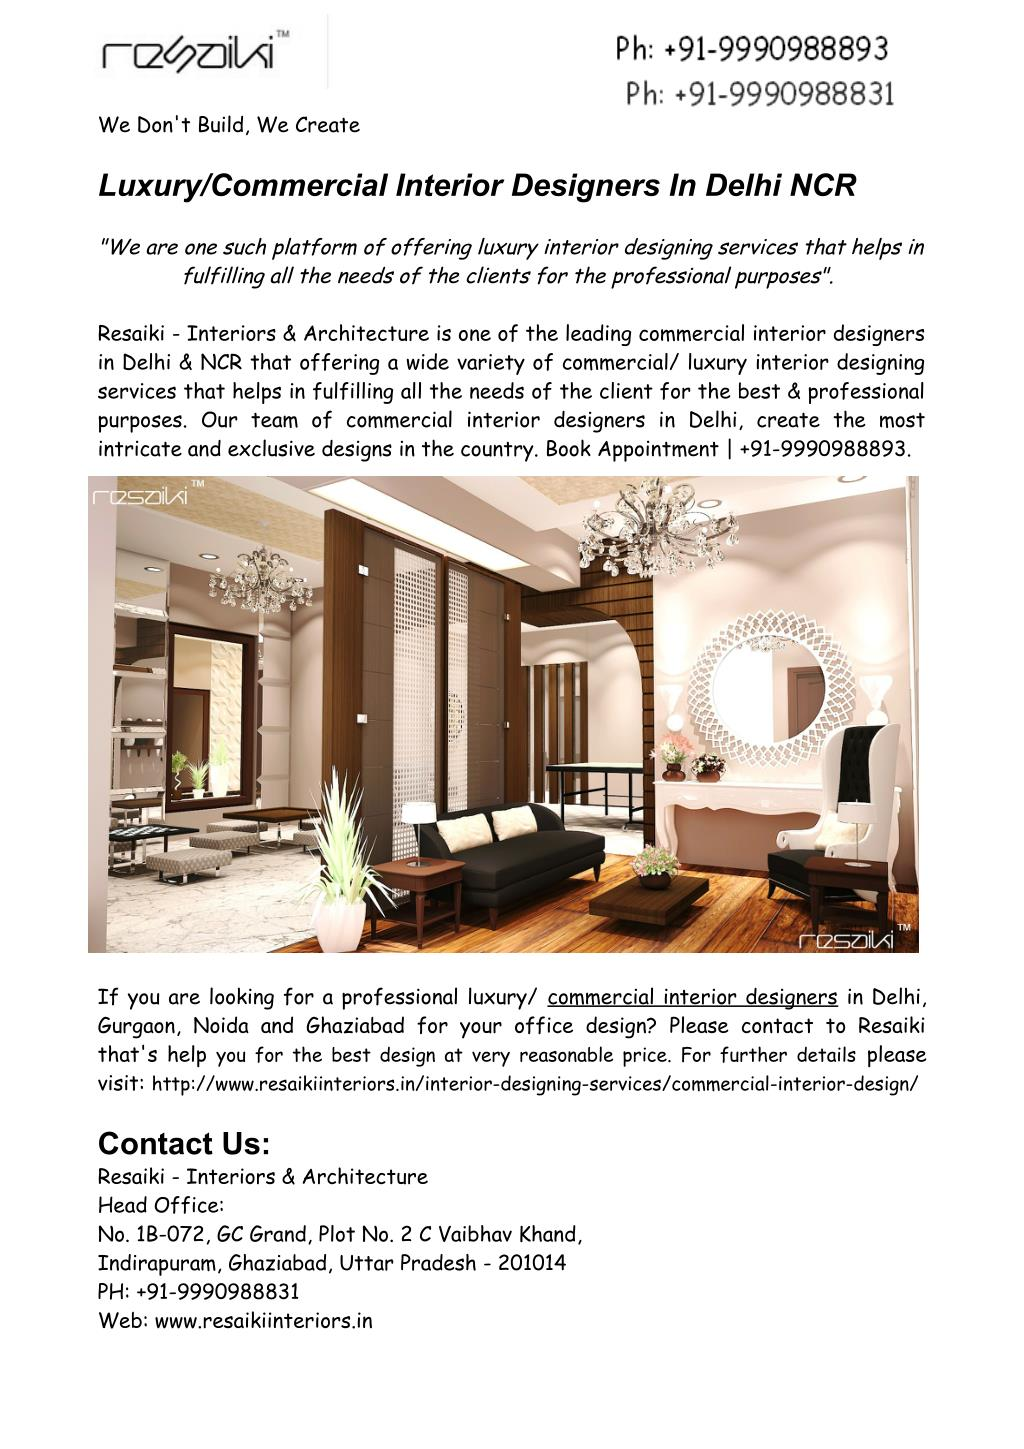 Ppt Luxury Commercial Interior Designers In Delhi Ncr Powerpoint Presentation Id 7373963